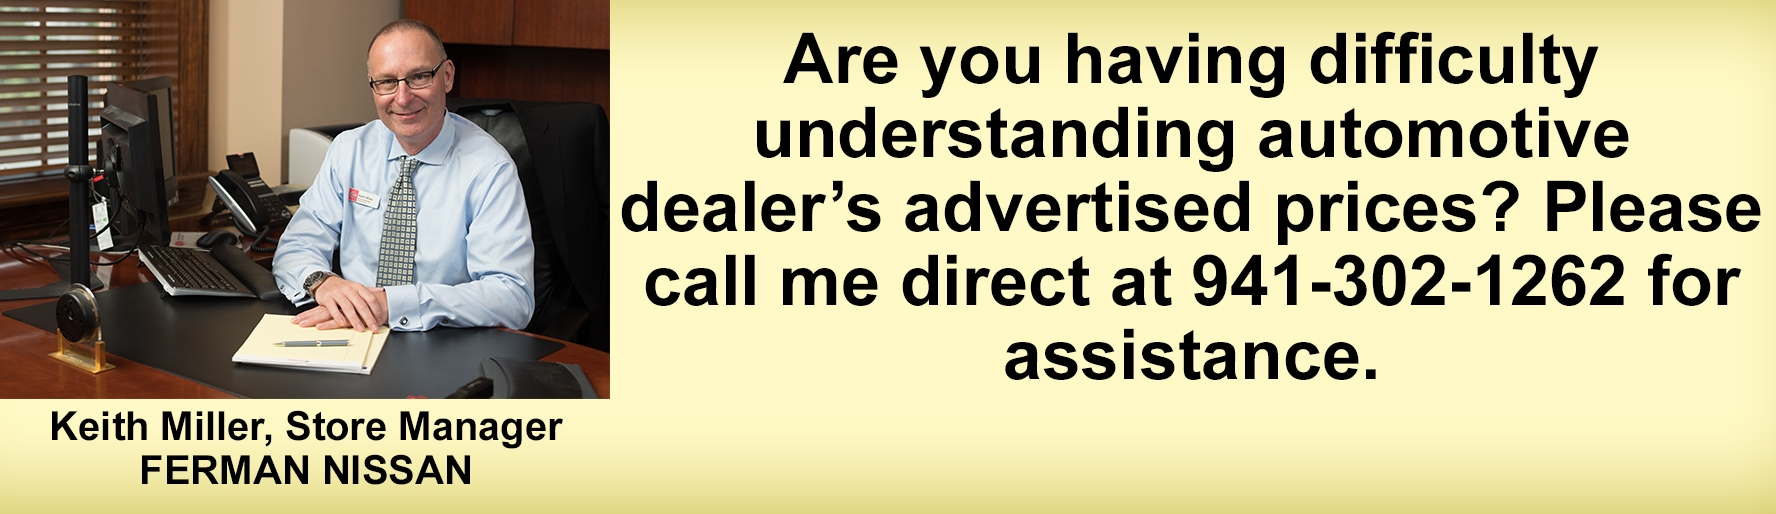 Are you having difficulty understanding automotive dealer's advertised prices? Please call me direct at 941-303-1262 | Keith Miller, Store Manager - Ferman Nissan